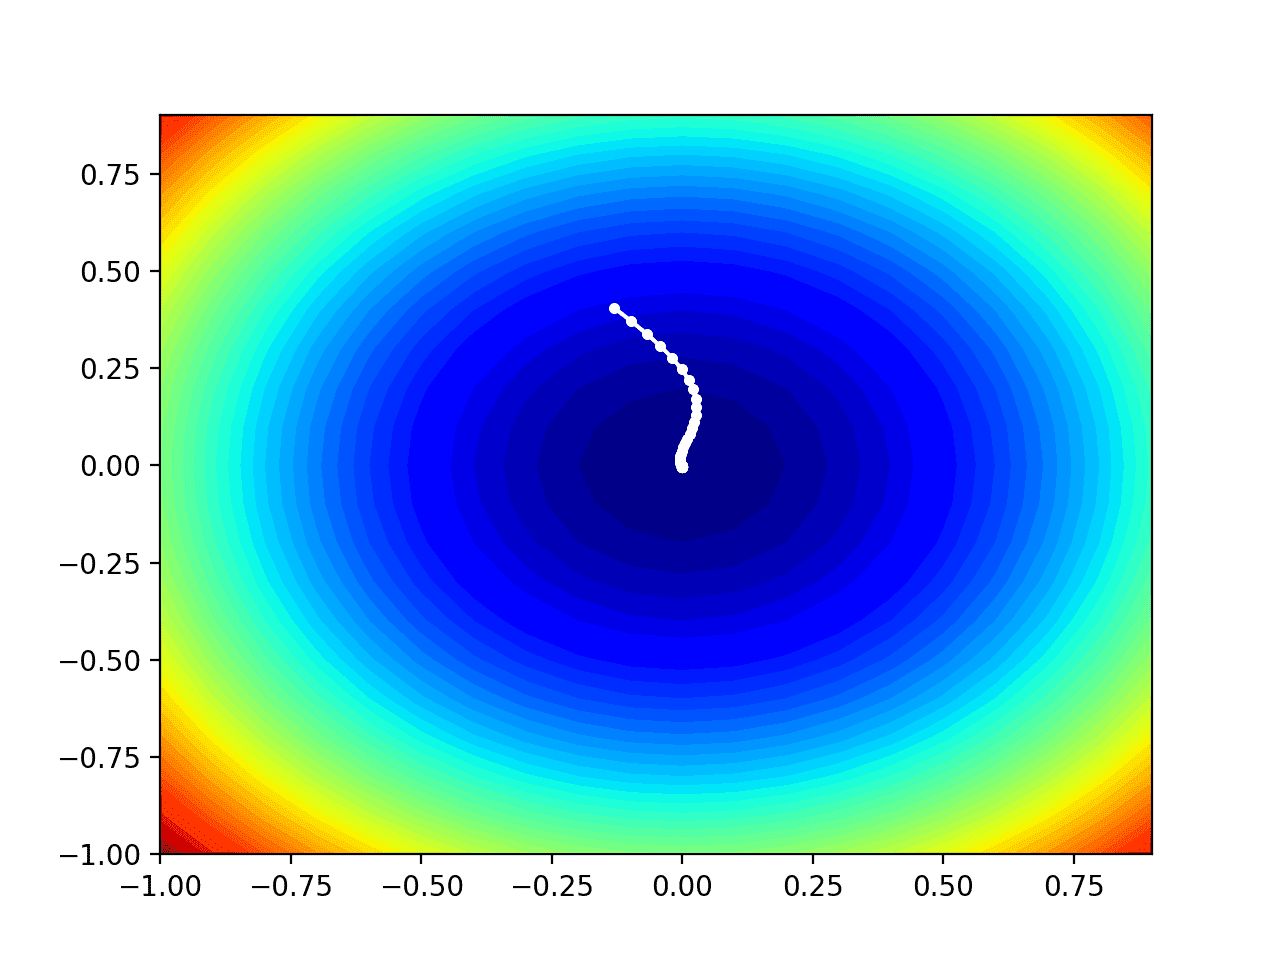 Contour Plot of the Test Objective Function With Nadam Search Results Shown